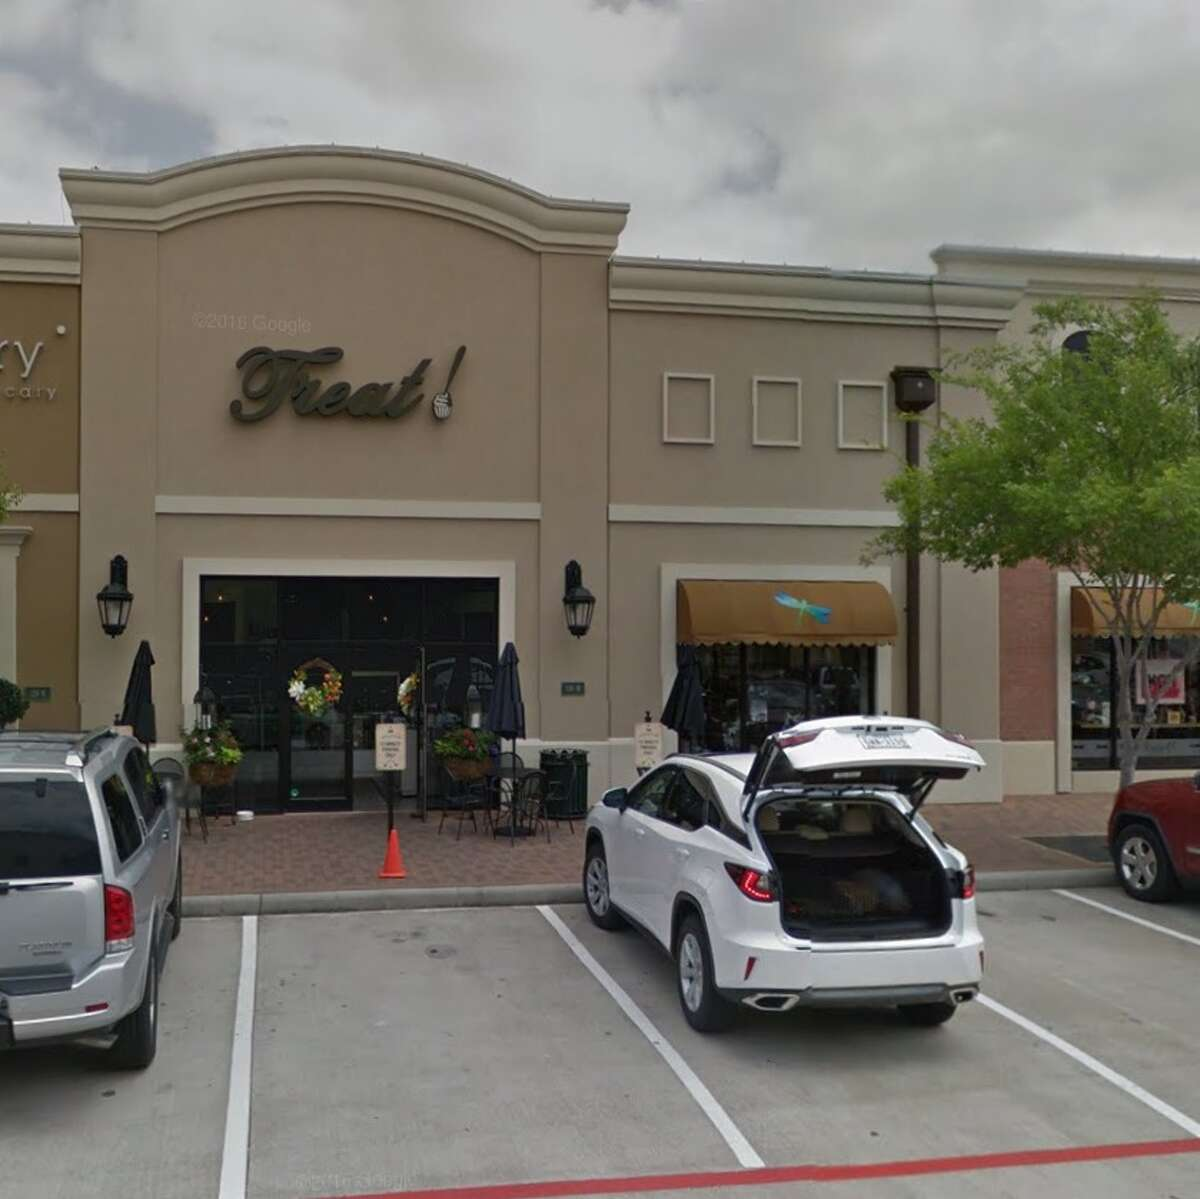 A woman accused the management of Treat Gourmet Cupcakes of firing an employee who wore a hijab to work. Treat Gourmet Cupcakes clarified on a Nov. 14, 2016 Facebook post that the employee was asked to wear a black hijab instead so it would match her uniform. The company said the employee agreed to change her hijab. Image source: Google Street View